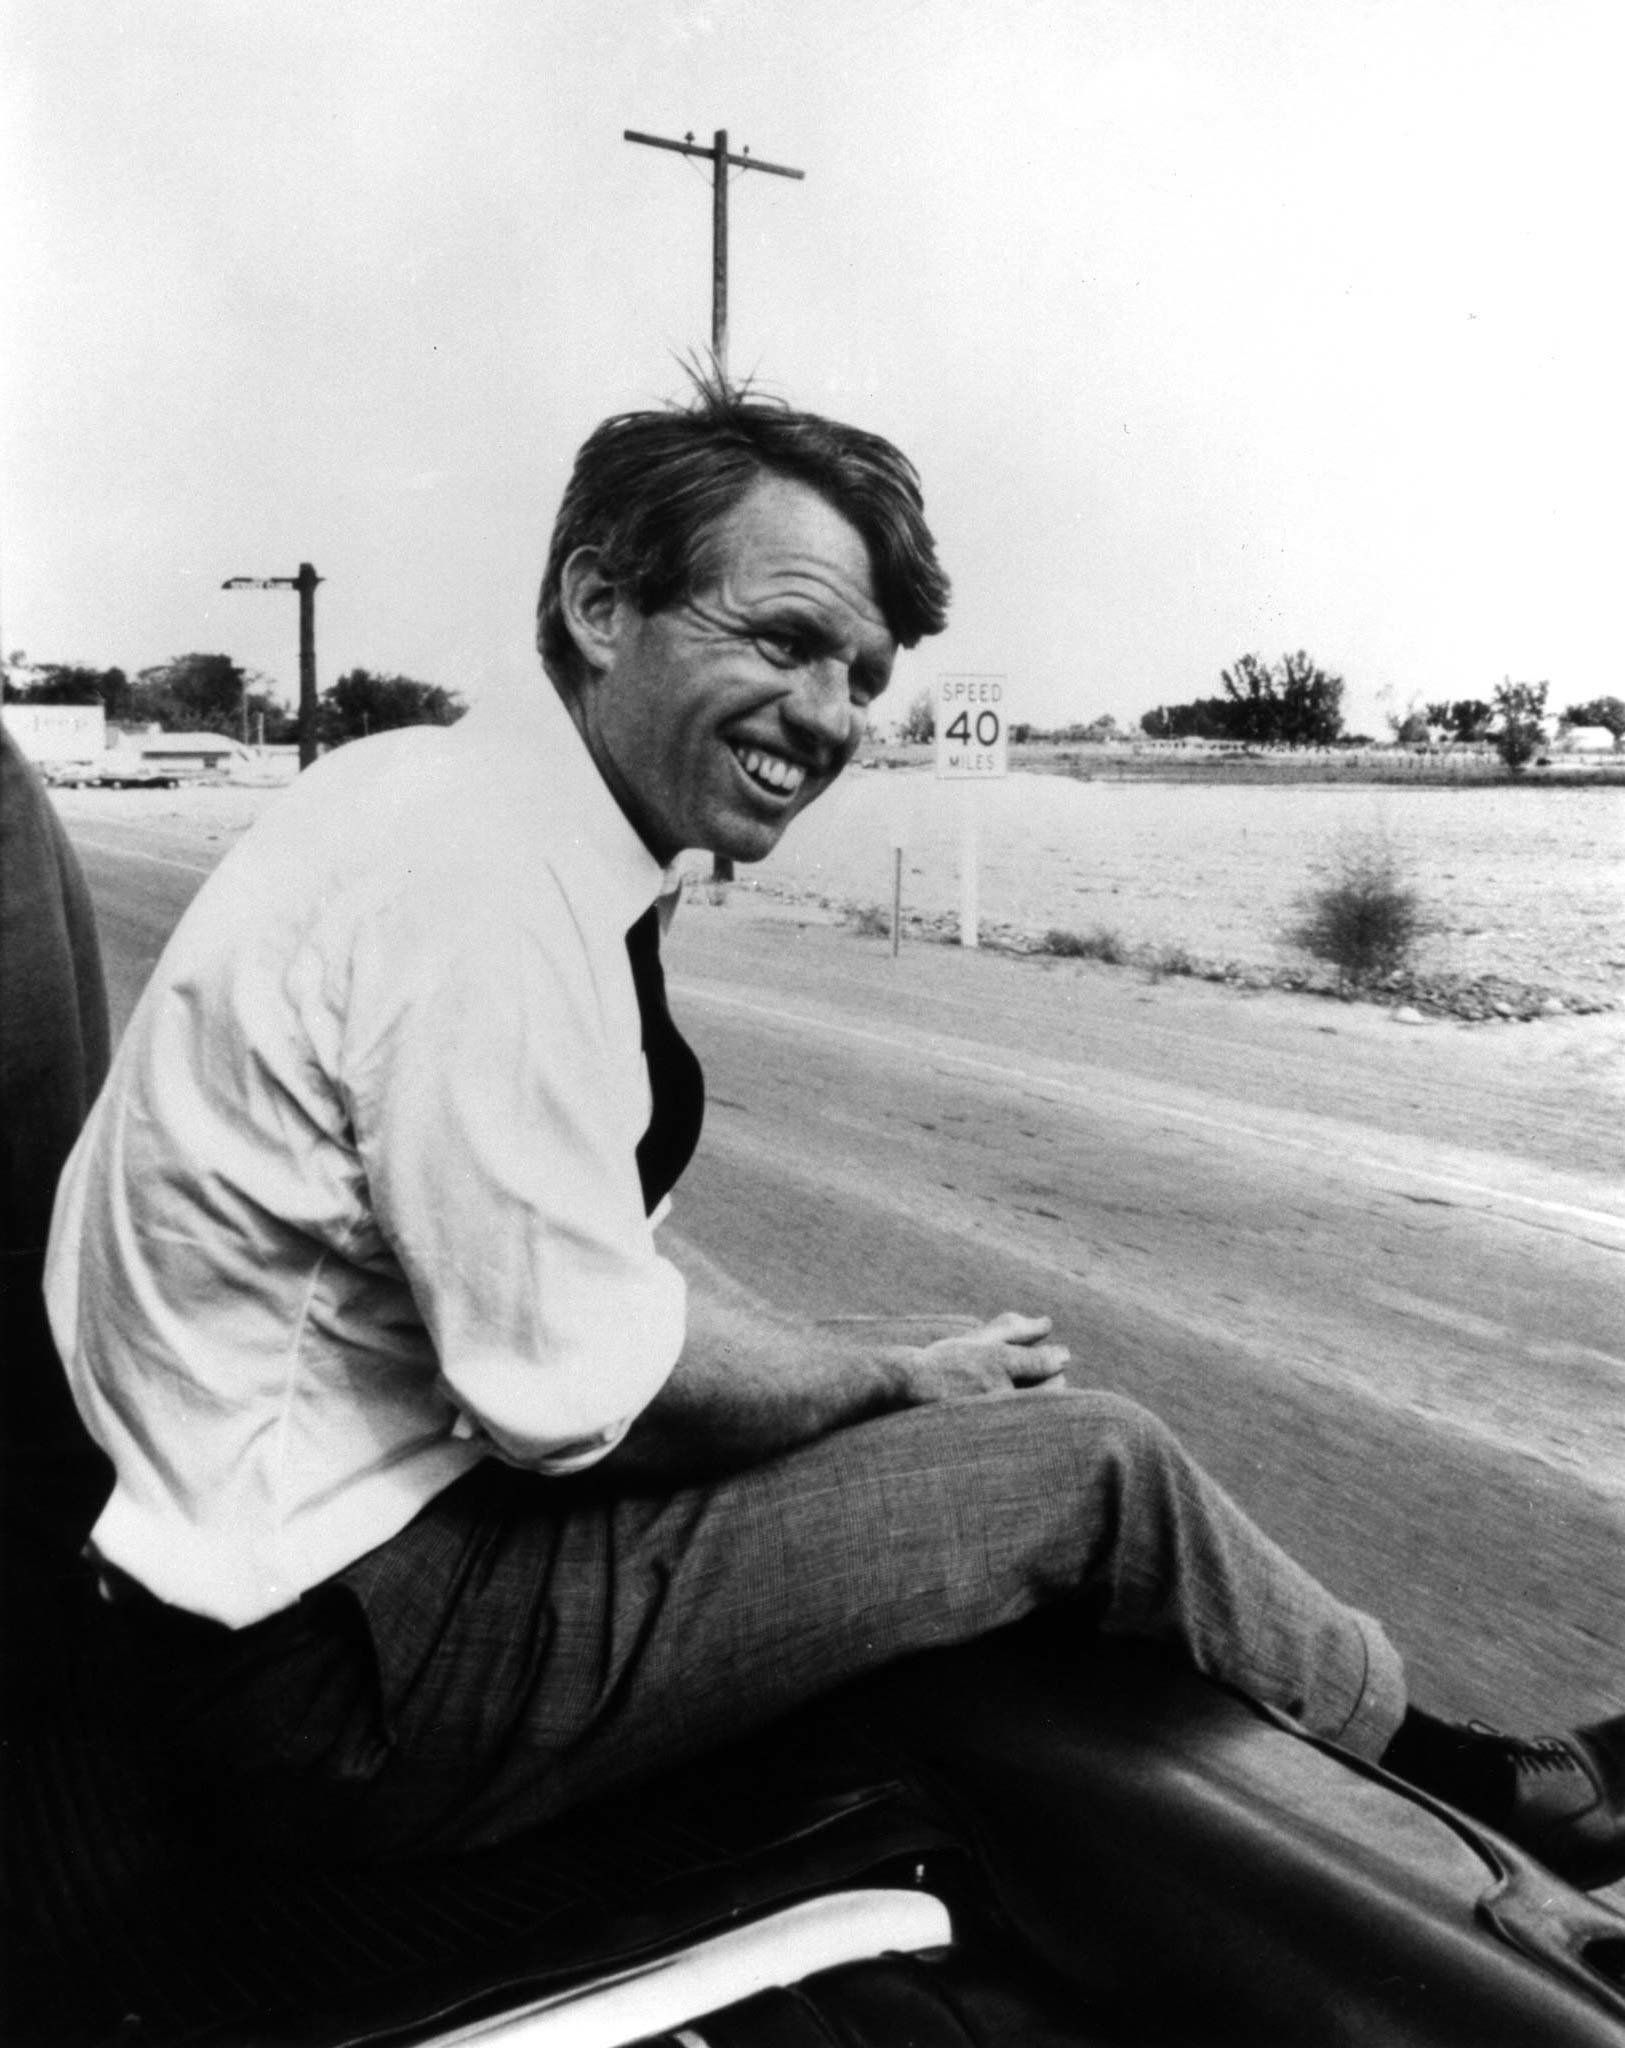 - 1968 FILE PHOTO  - Robert F. Kennedy sits alongside the motorcade in this 1968 file photograph.  Robert Kennedy was shot 30 years ago in Los Angeles June 5, 1968 and died the following day.  (B&W ONLY)